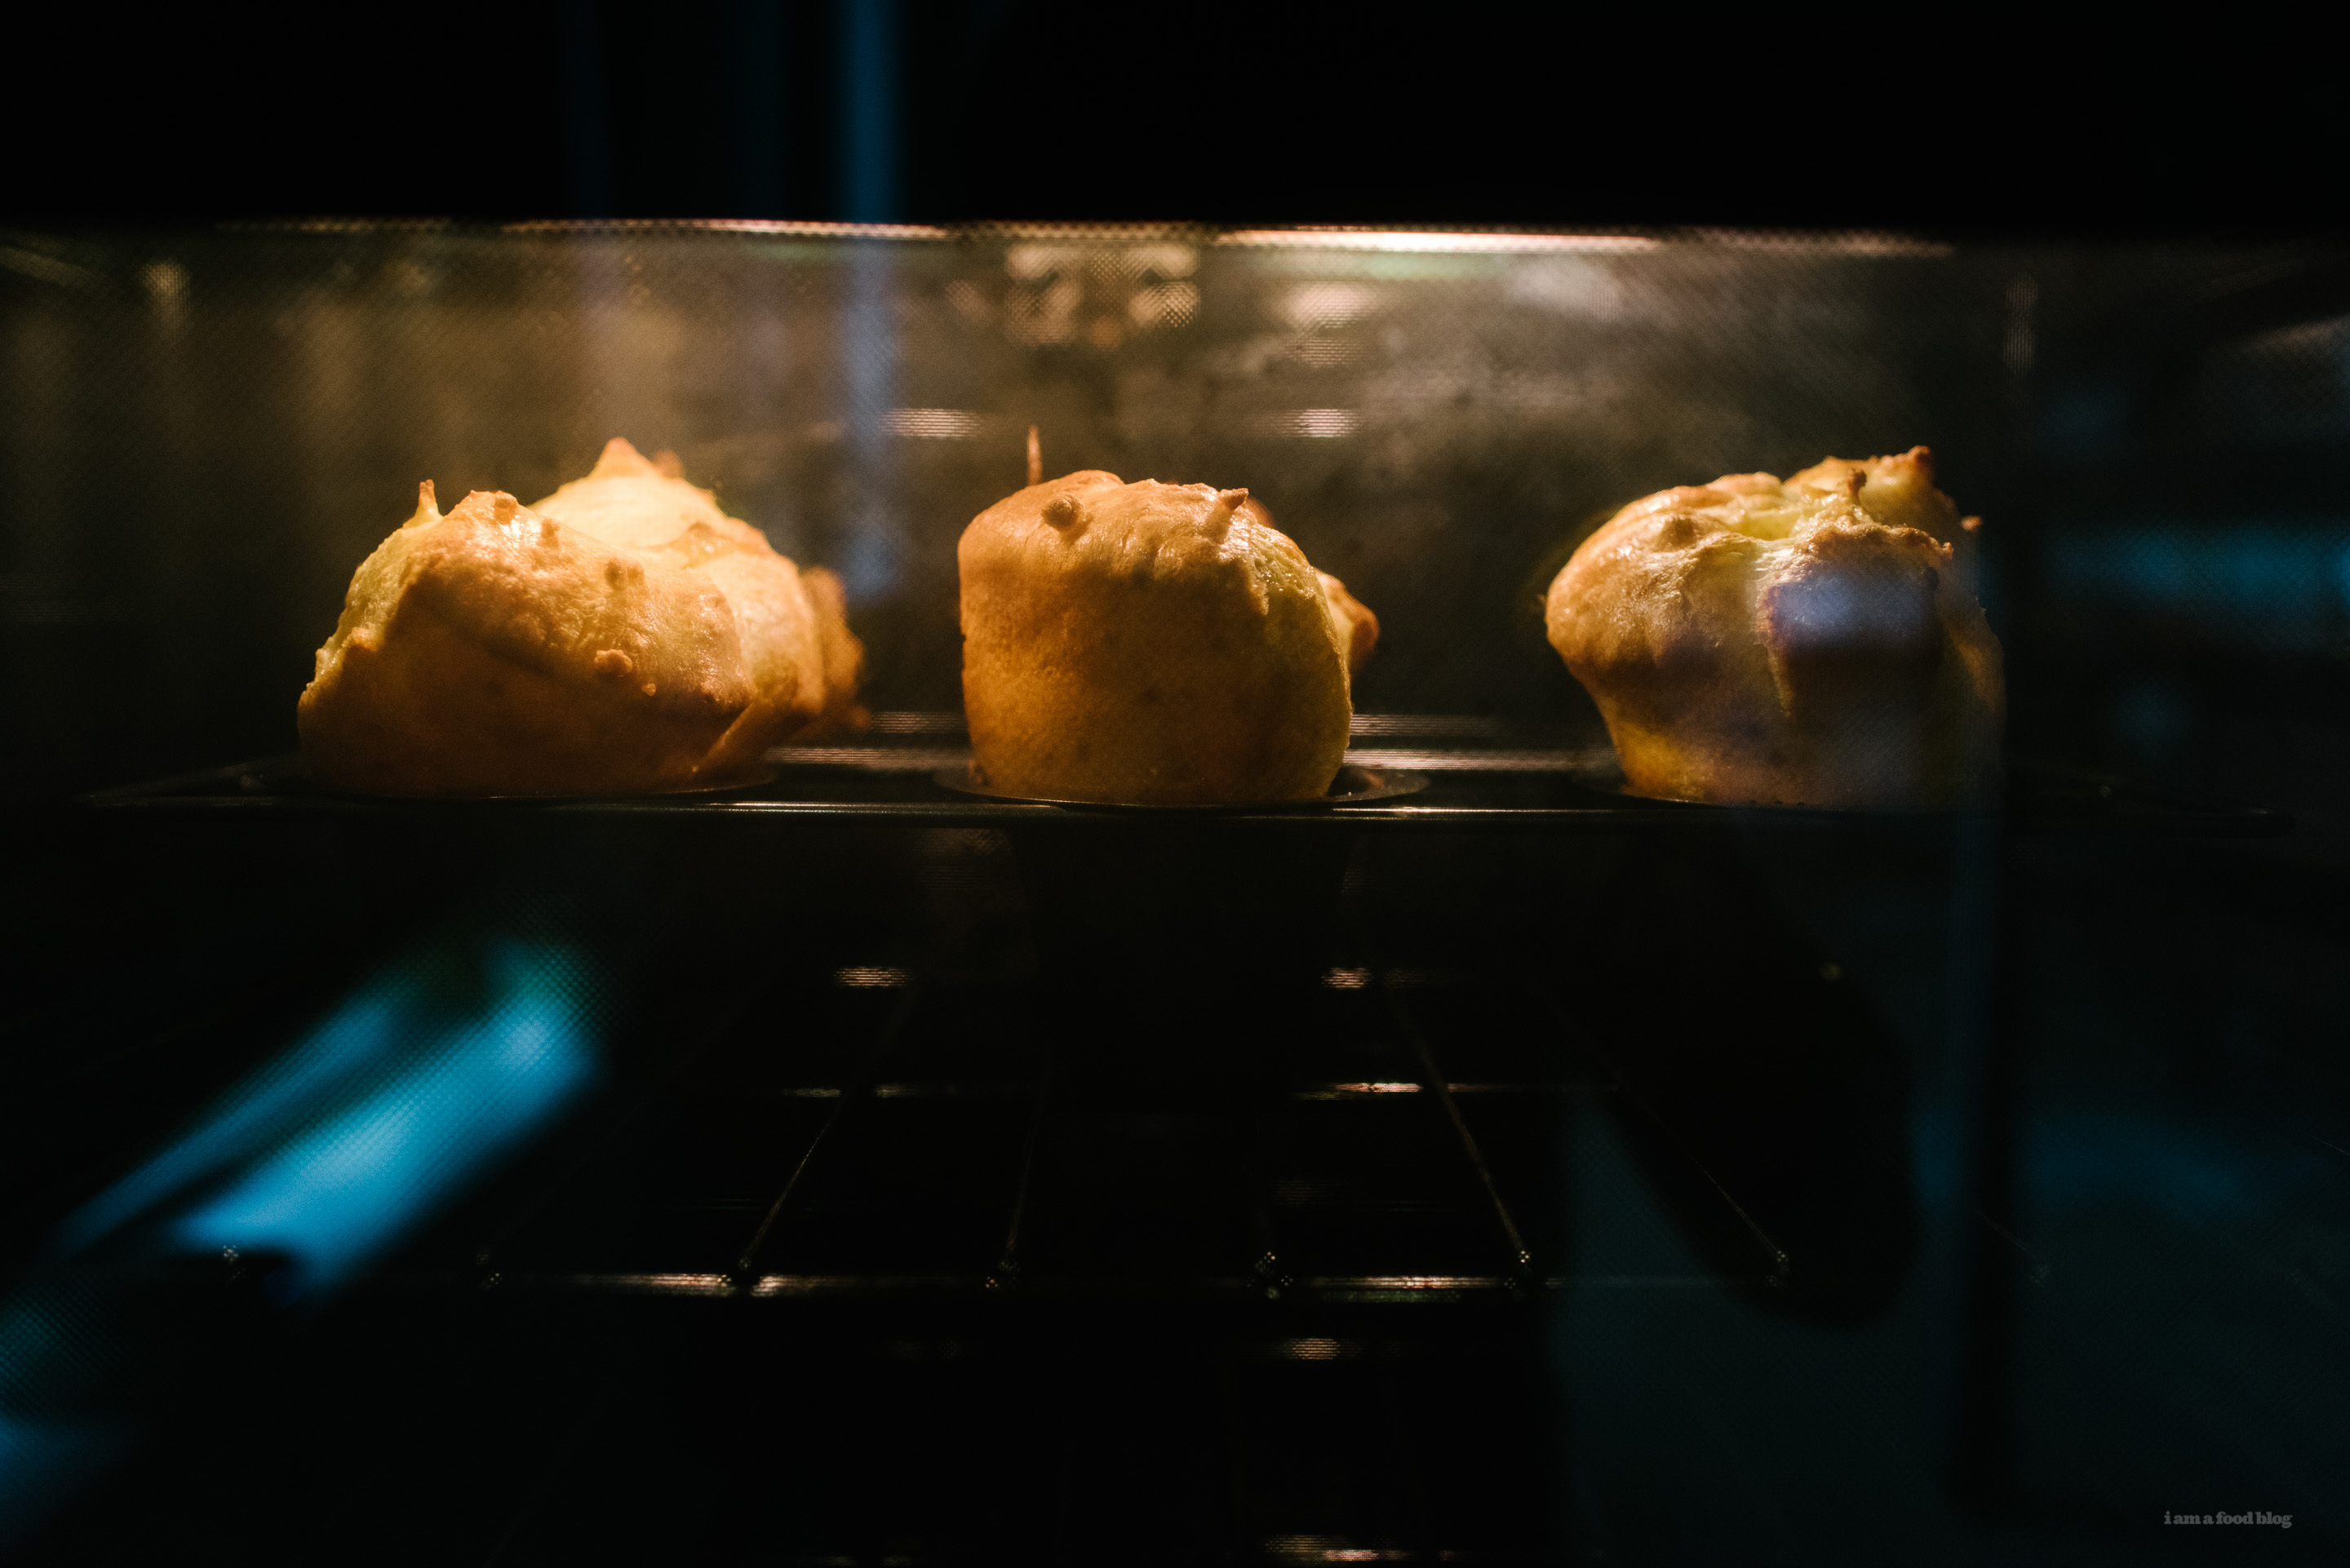 Yorkshire Pudding Recipe - www.iamafoodblog.com